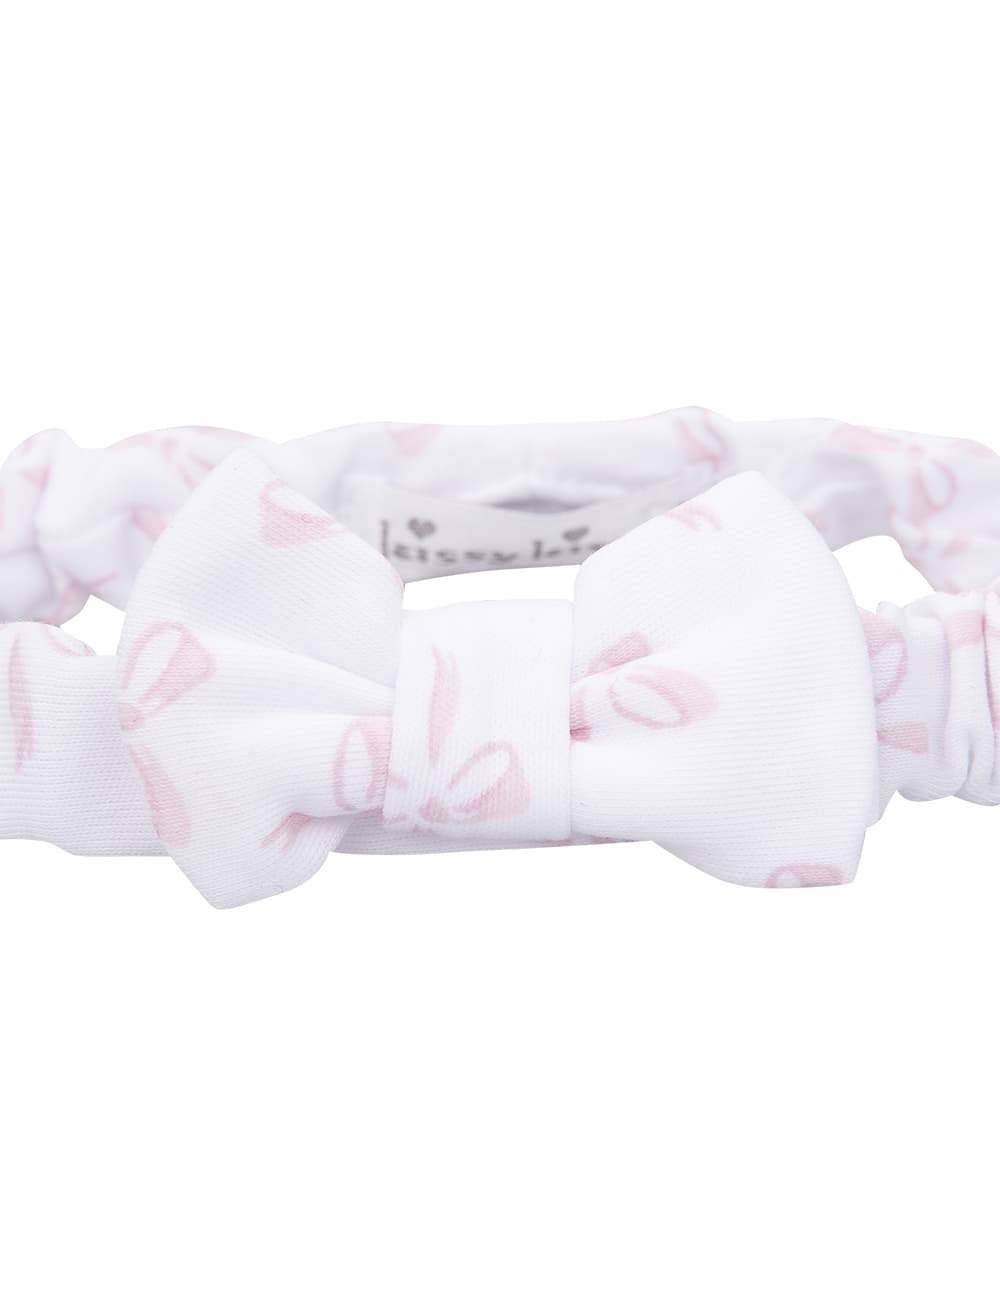 Kissy Kissy - Bunches Of Bows Headband Girls, White